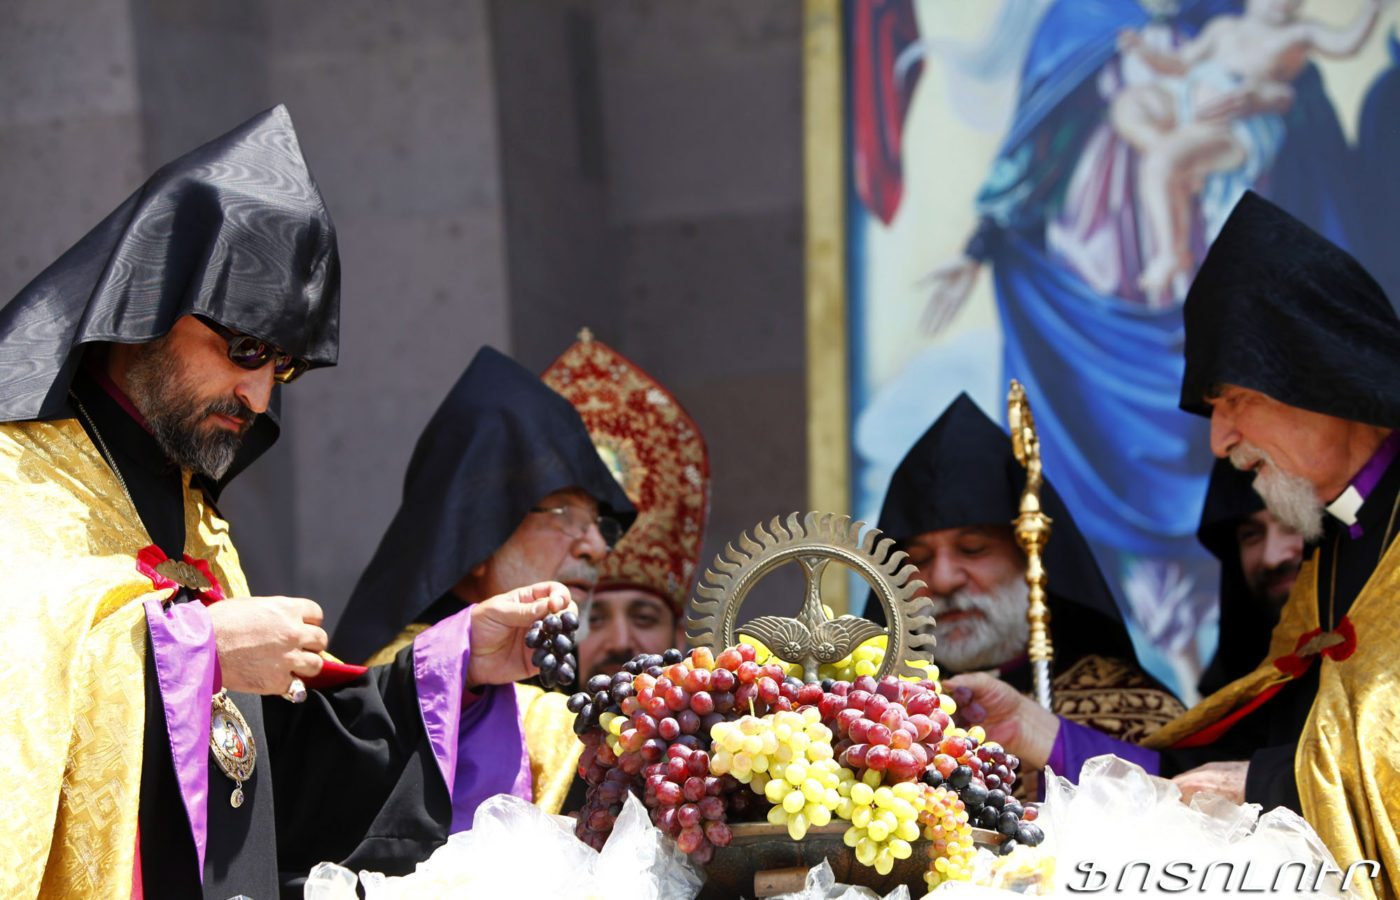 Grape blessing ceremony at the Echmiadzin Cathedral